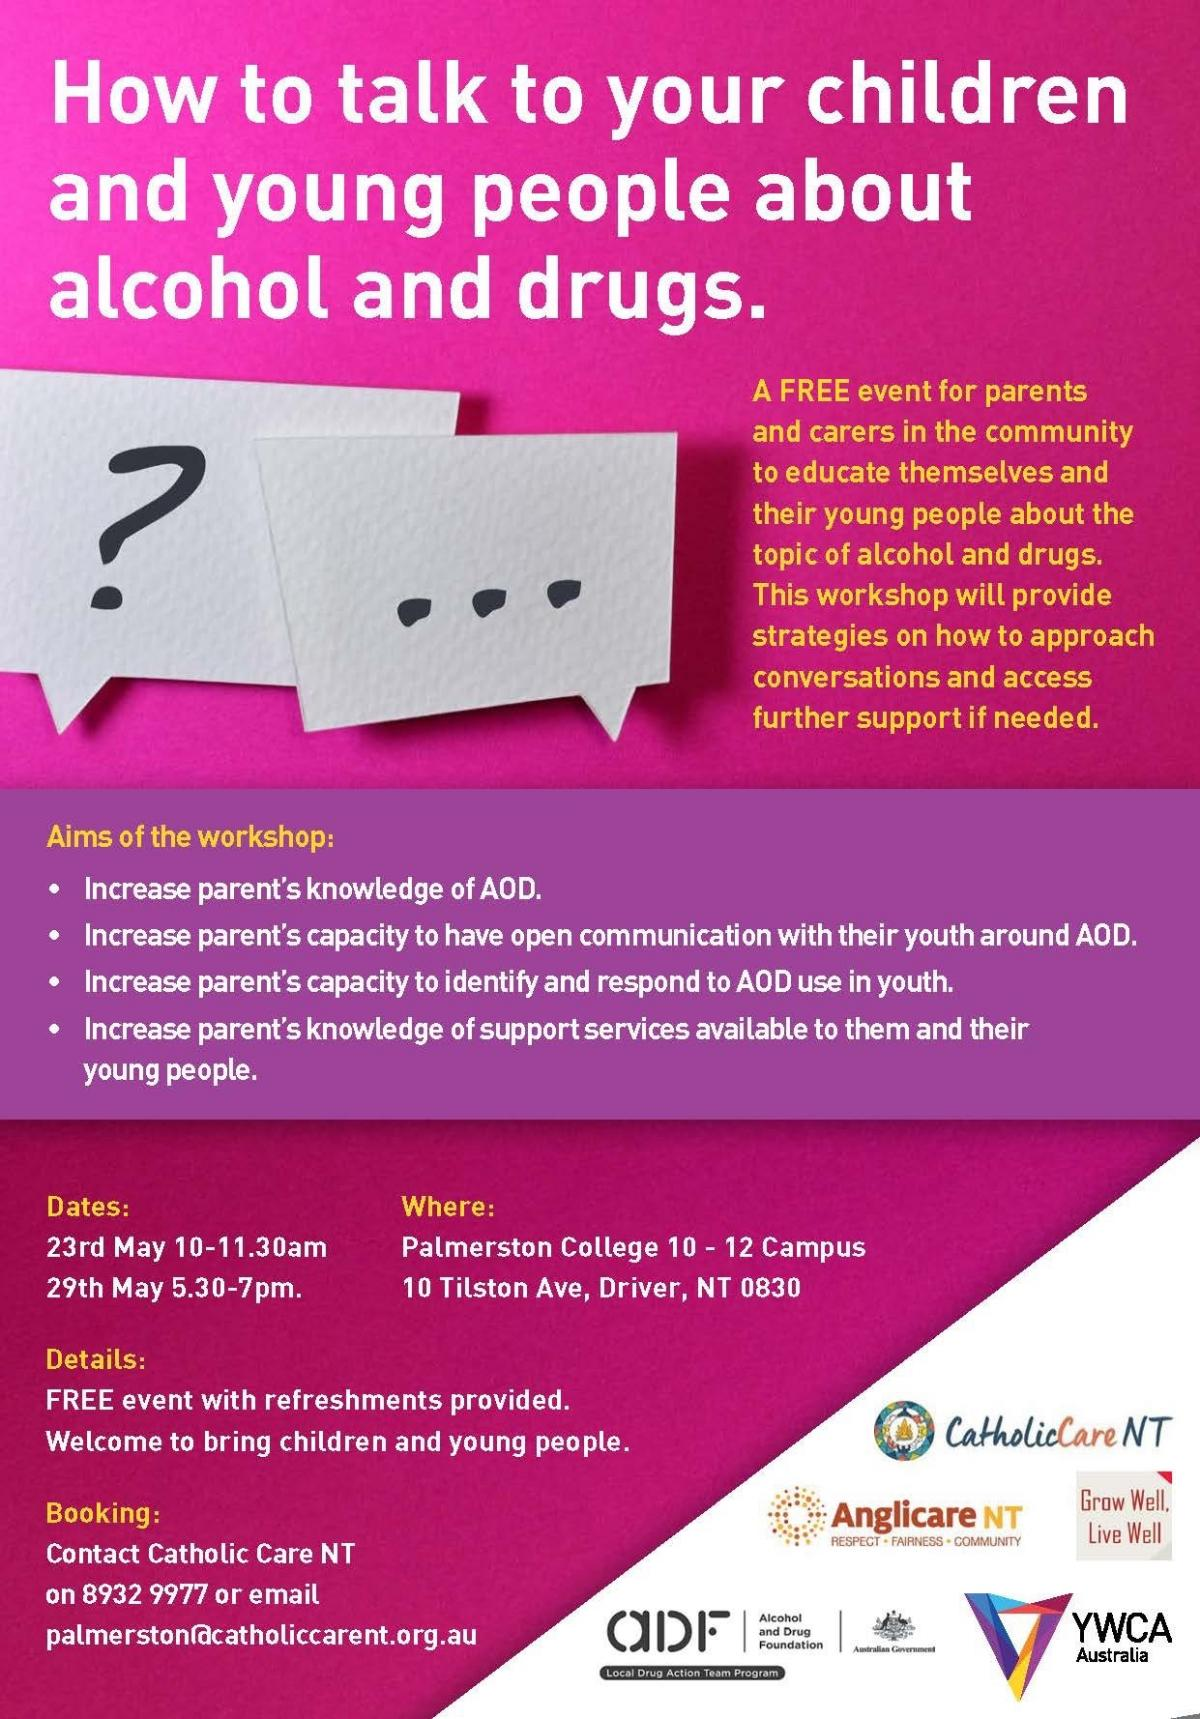 How To Talk About Drugs With Someone I Care About Australian >> How To Talk To Your Children And Young People About Alcohol And